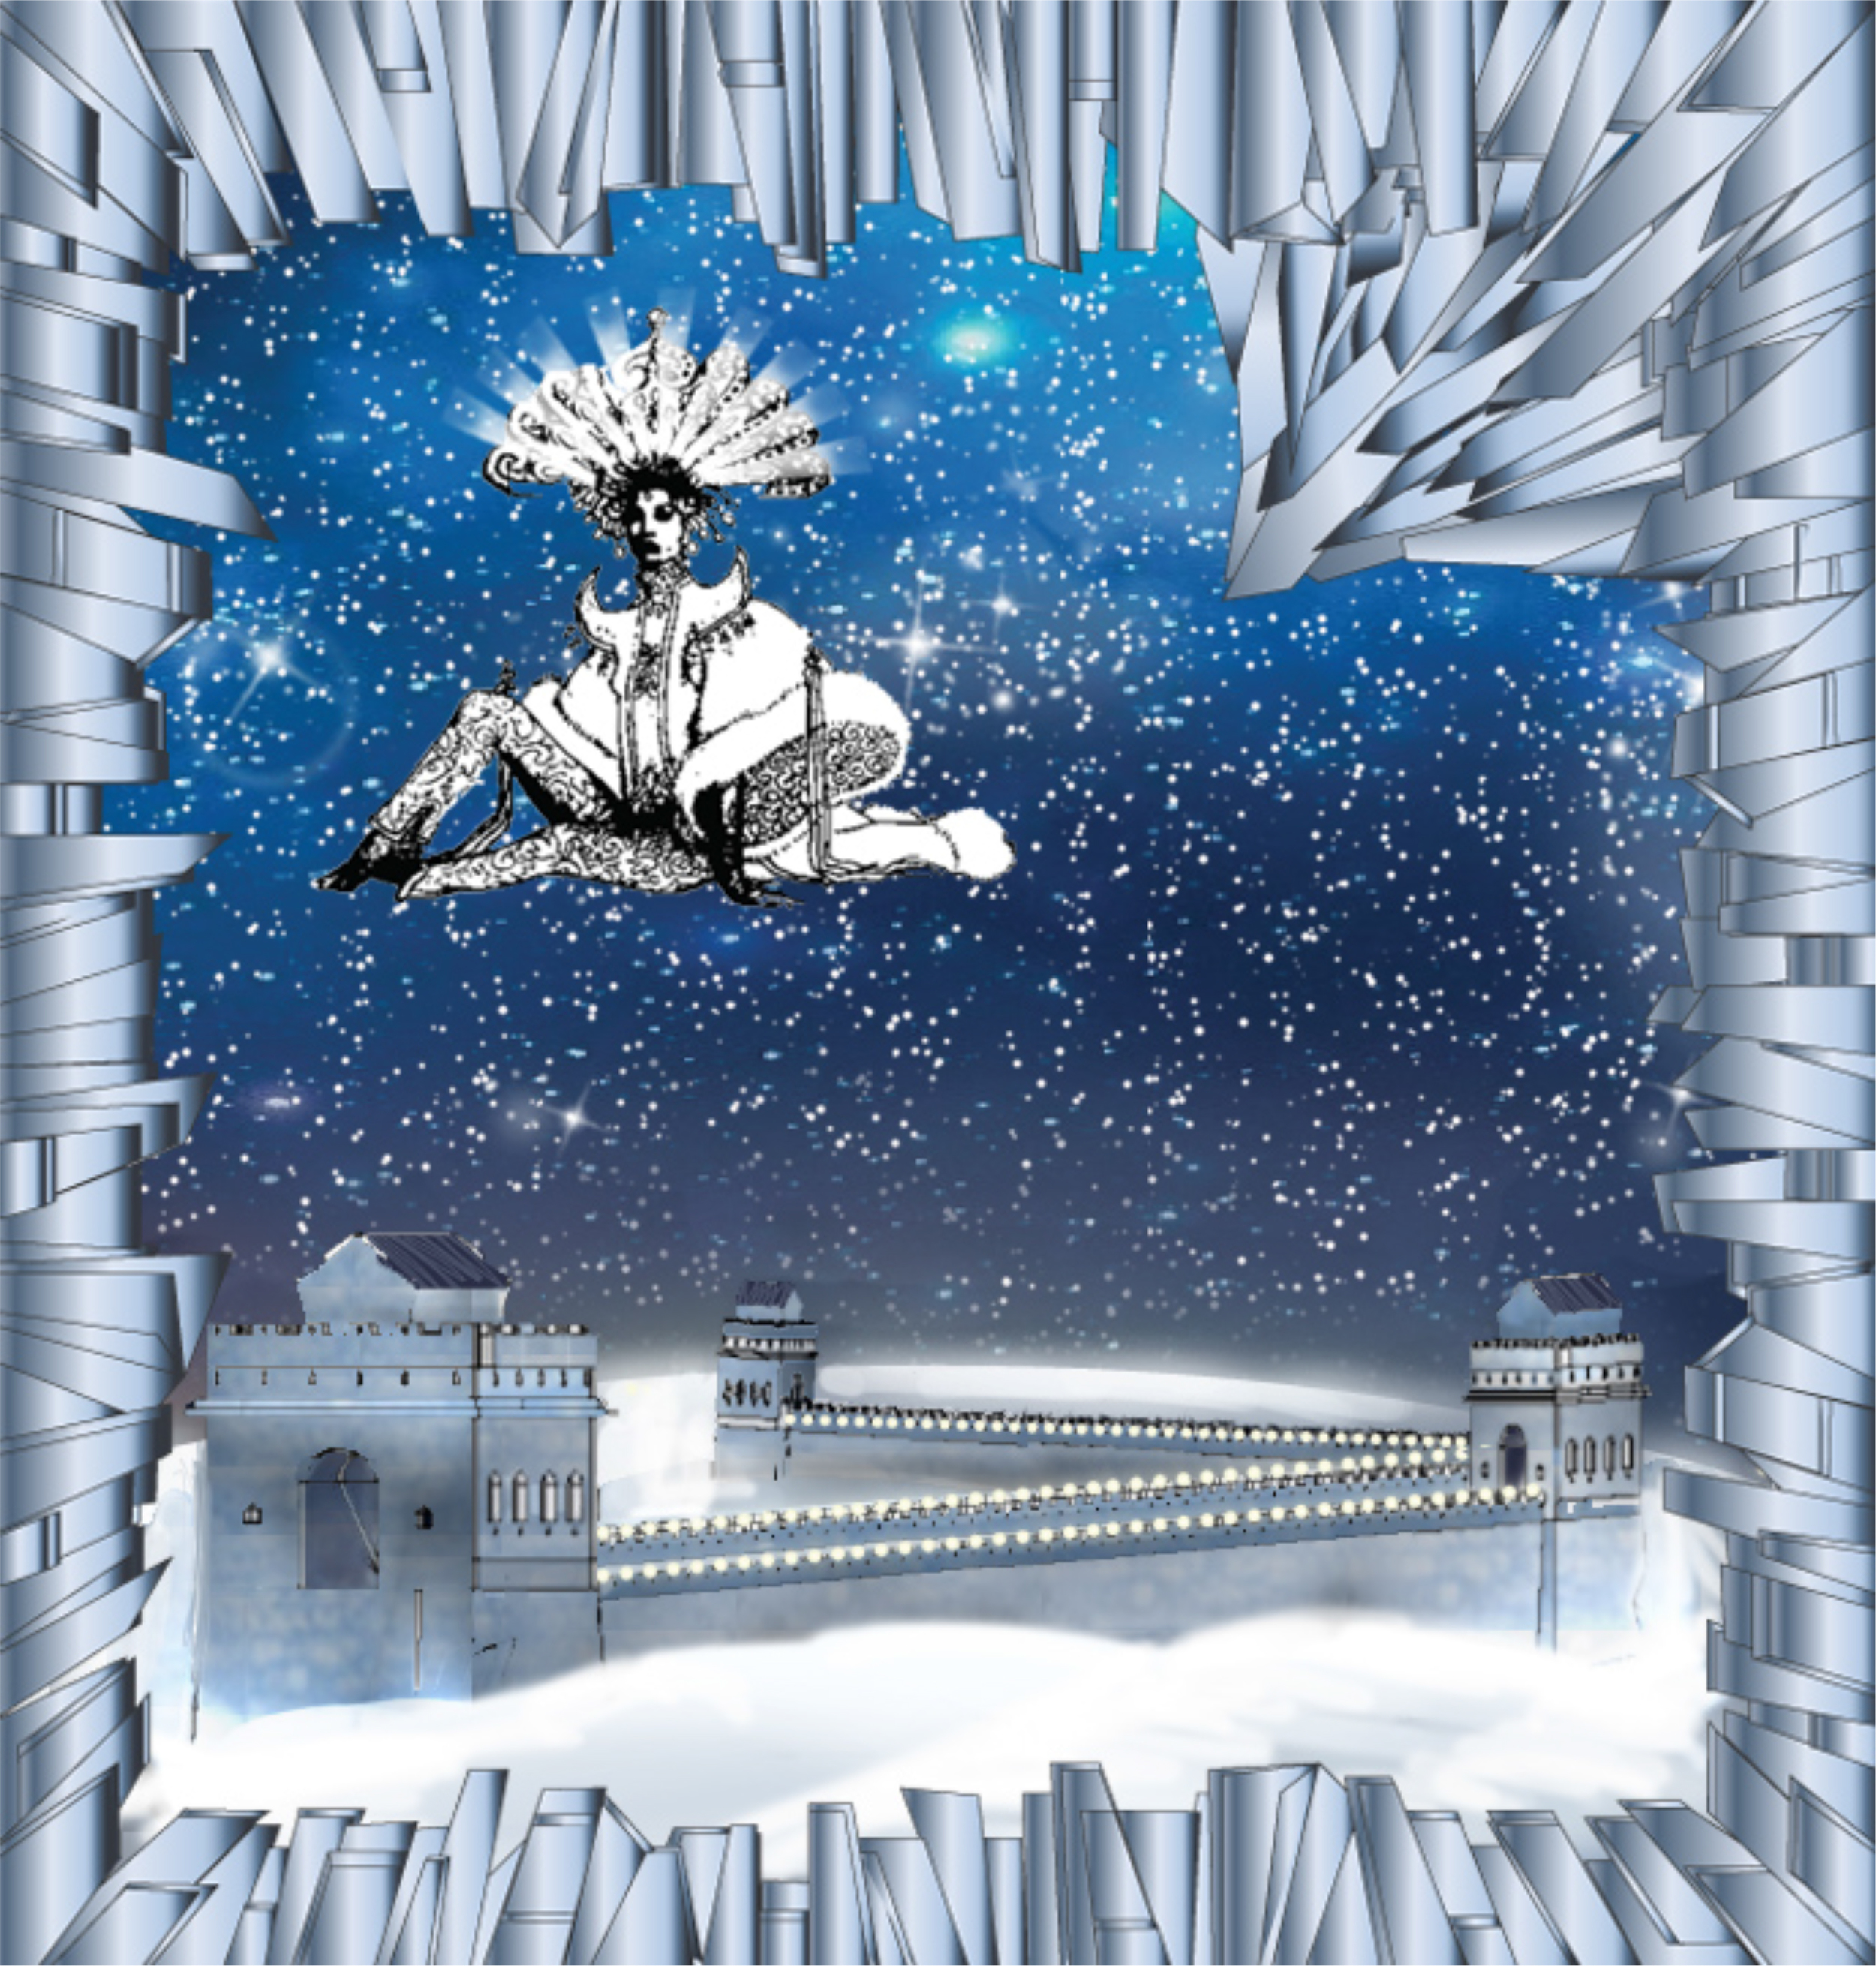 Saks Fifth Avenue Holiday Windows 2015: The Great Wall of China (Sketch, Courtesy of Just So)